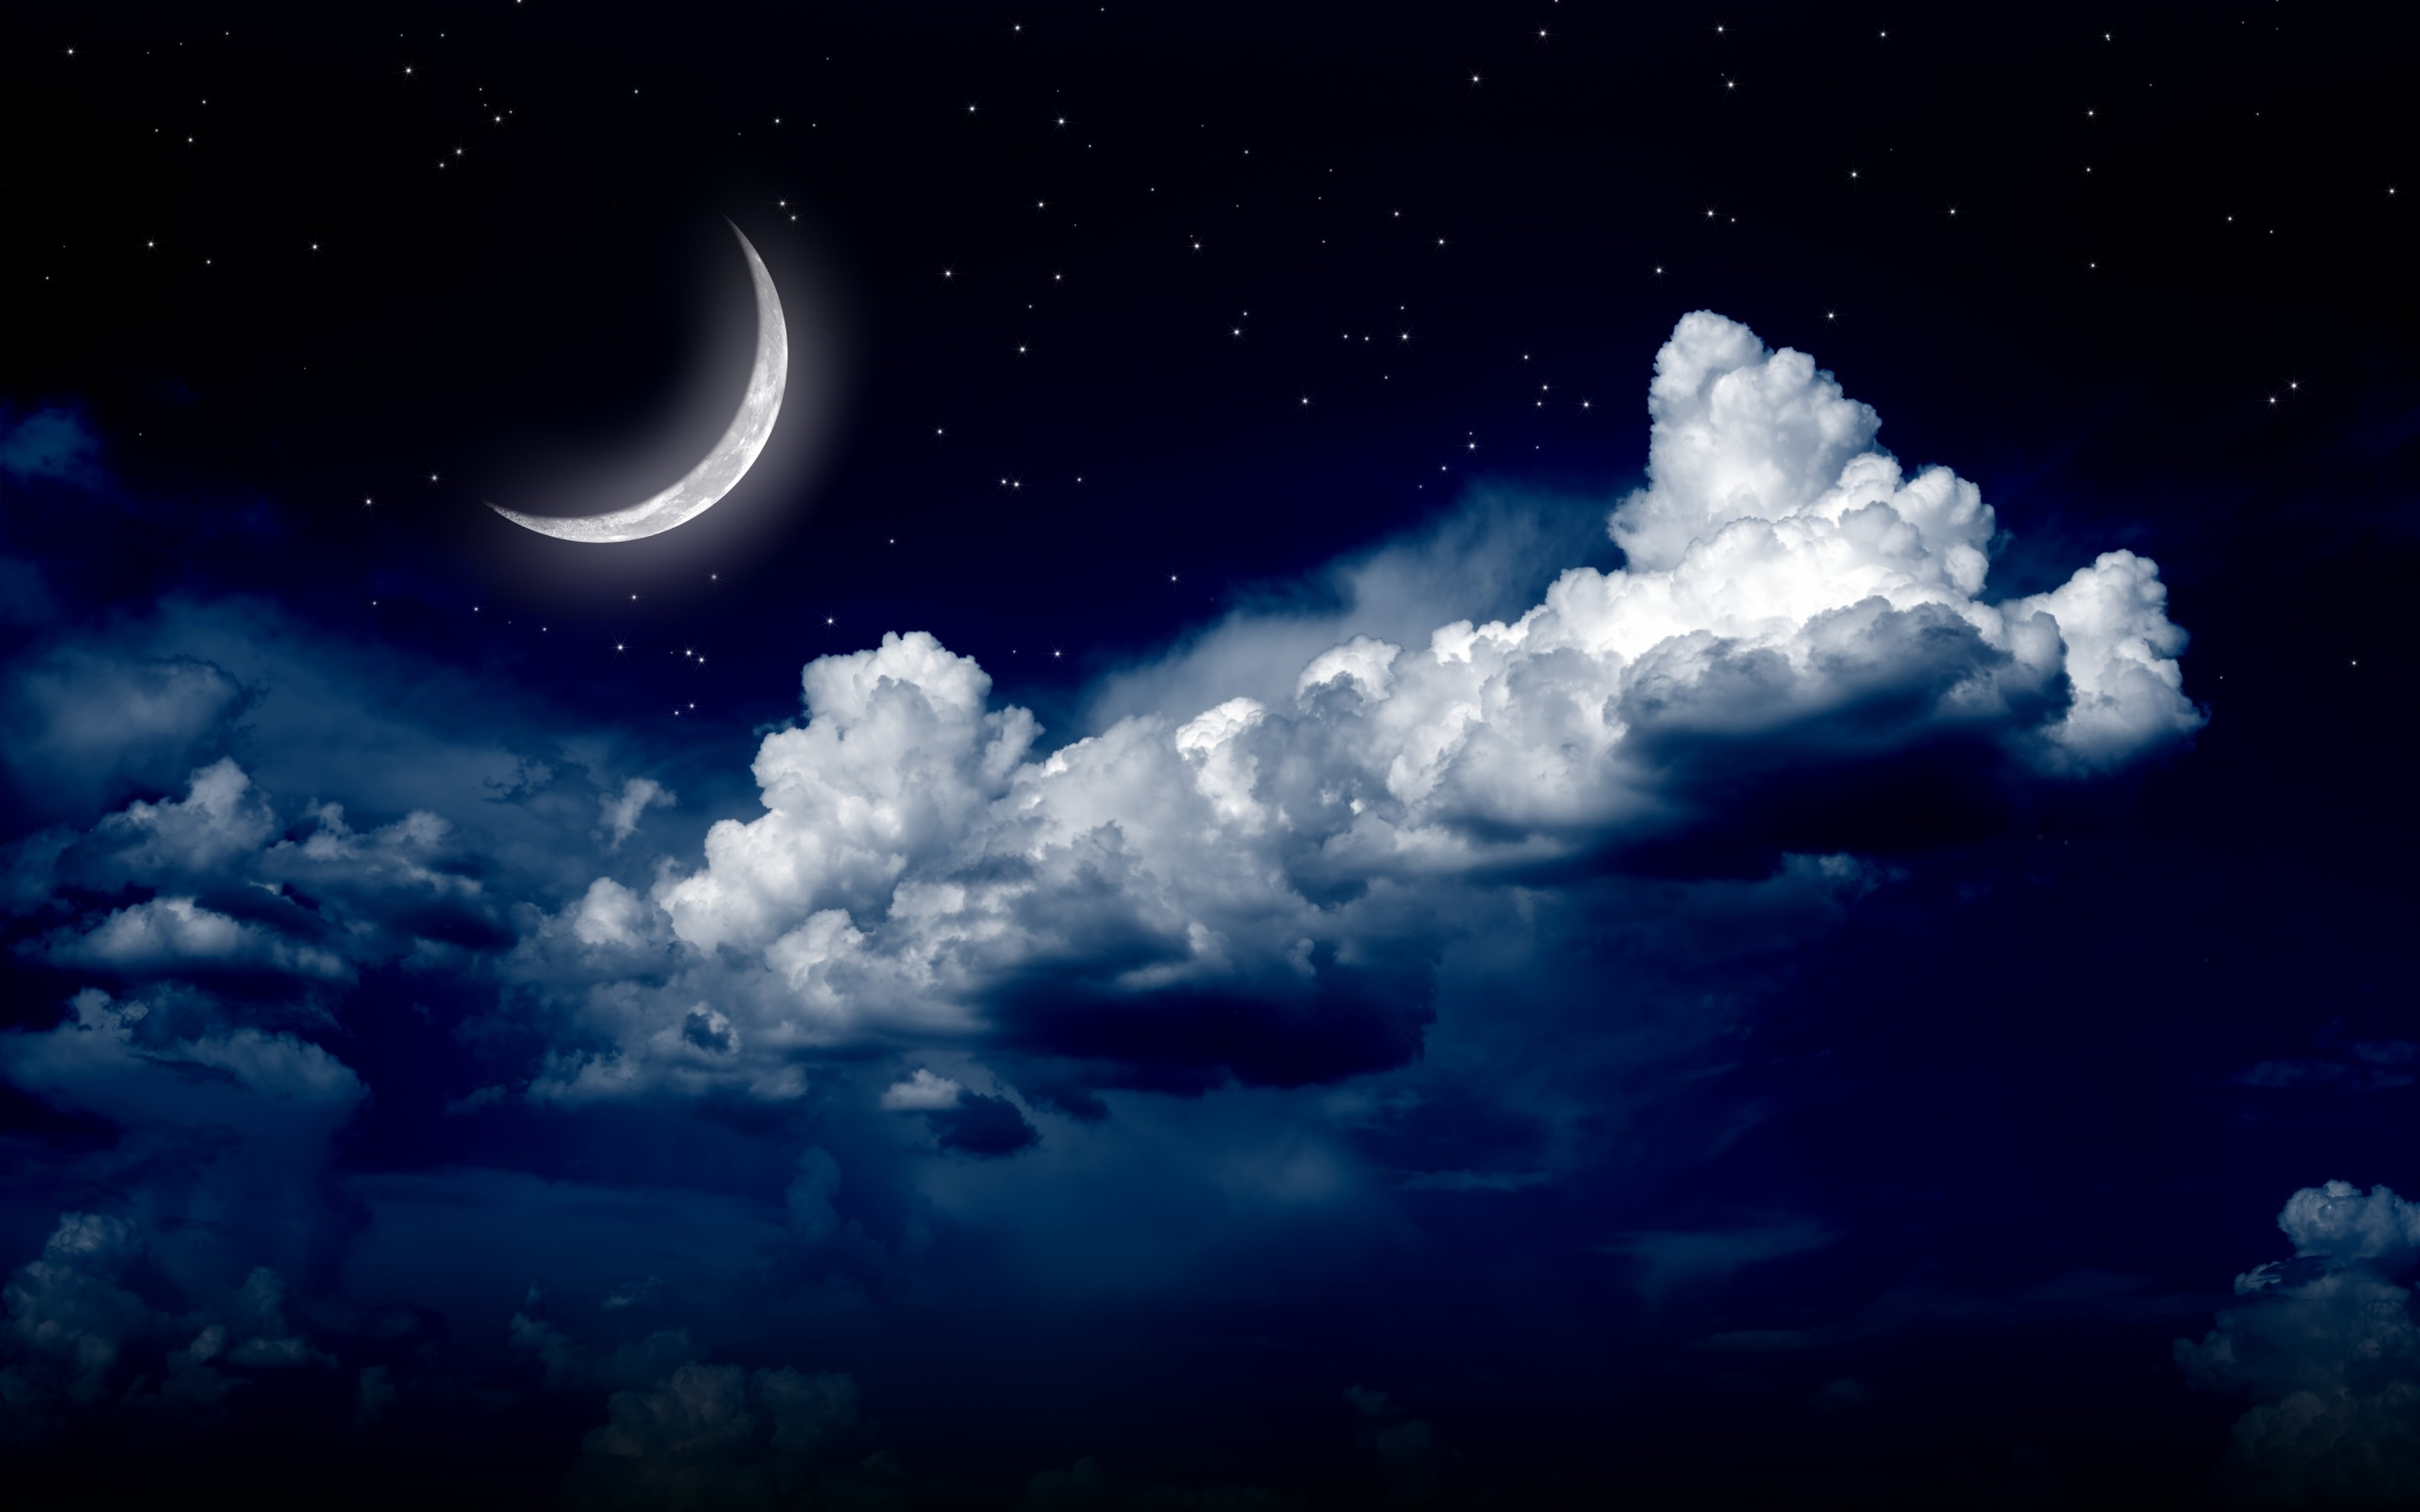 Moonlight Night Sky